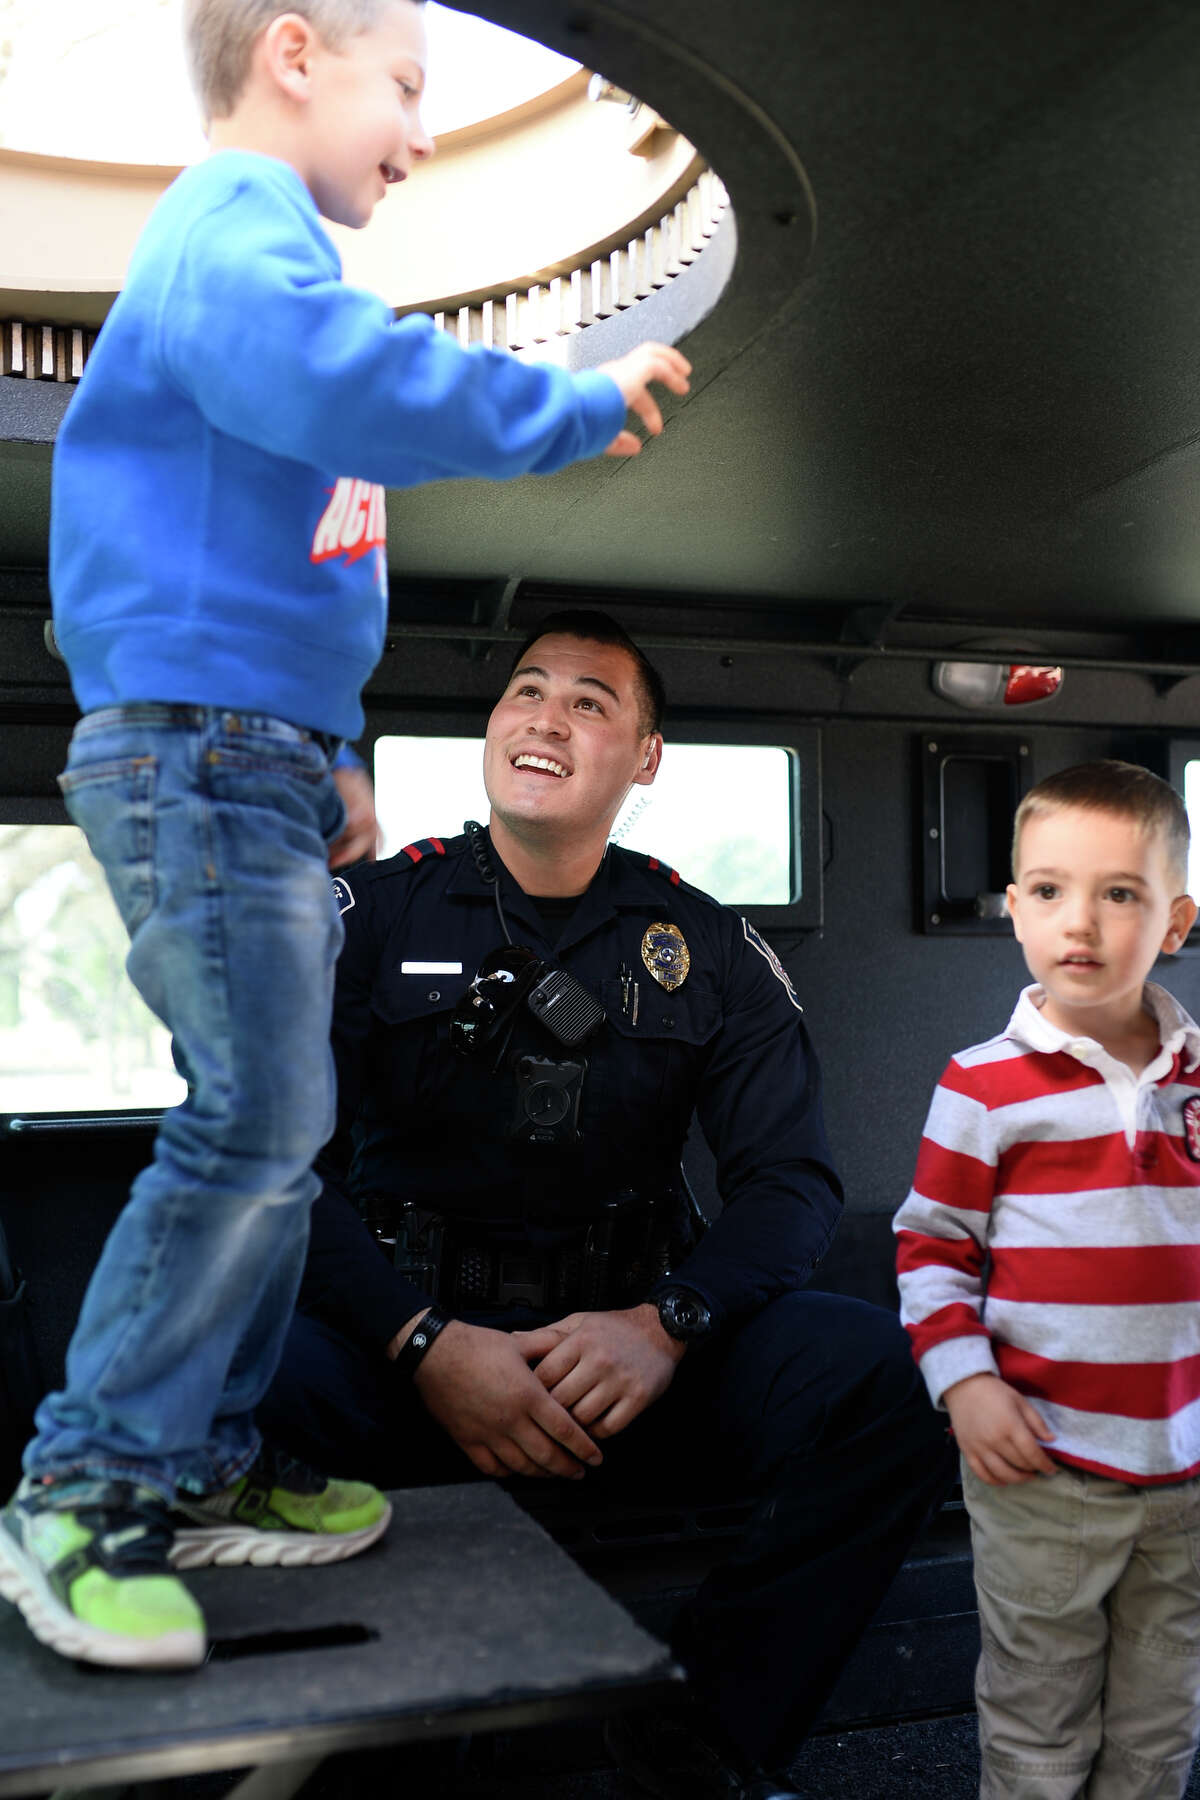 """Midland Police Department officer Joe Mendez talks with young Midlanders inside a Bearcat armored vehicle during a """"Cookies with a Cop"""" event March 7, 2018 at Midland Community Theater. James Durbin/Reporter-Telegram"""